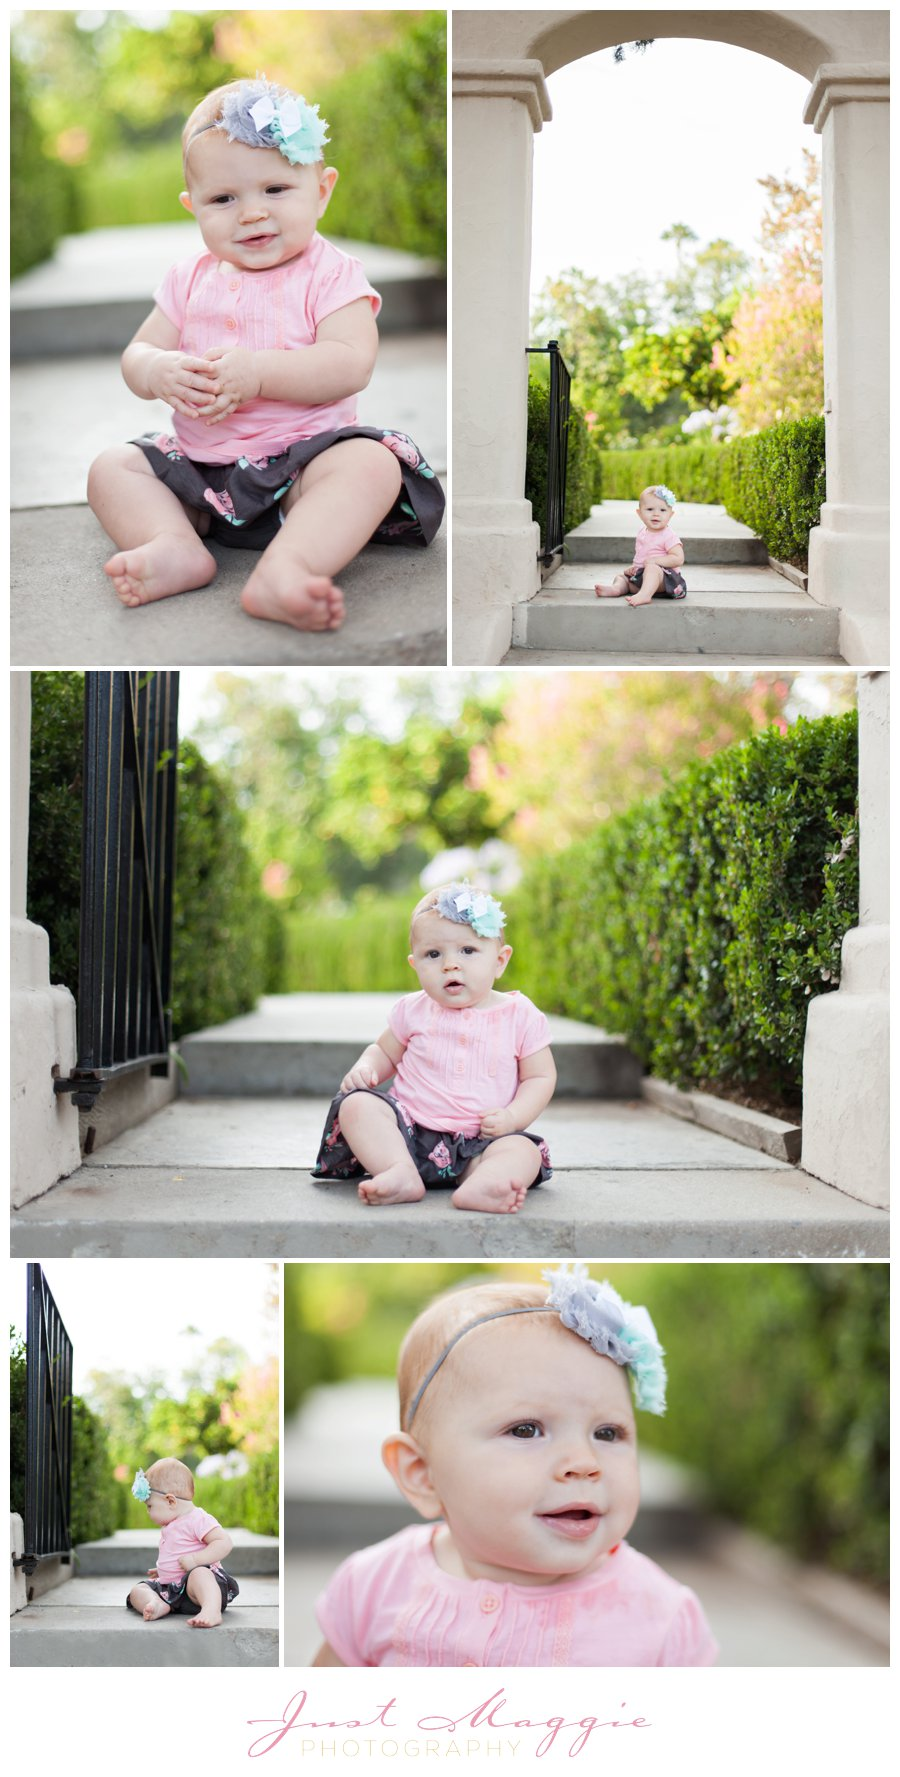 Modern Baby Photography by Just Maggie Photography - Los Angeles Family Photographer